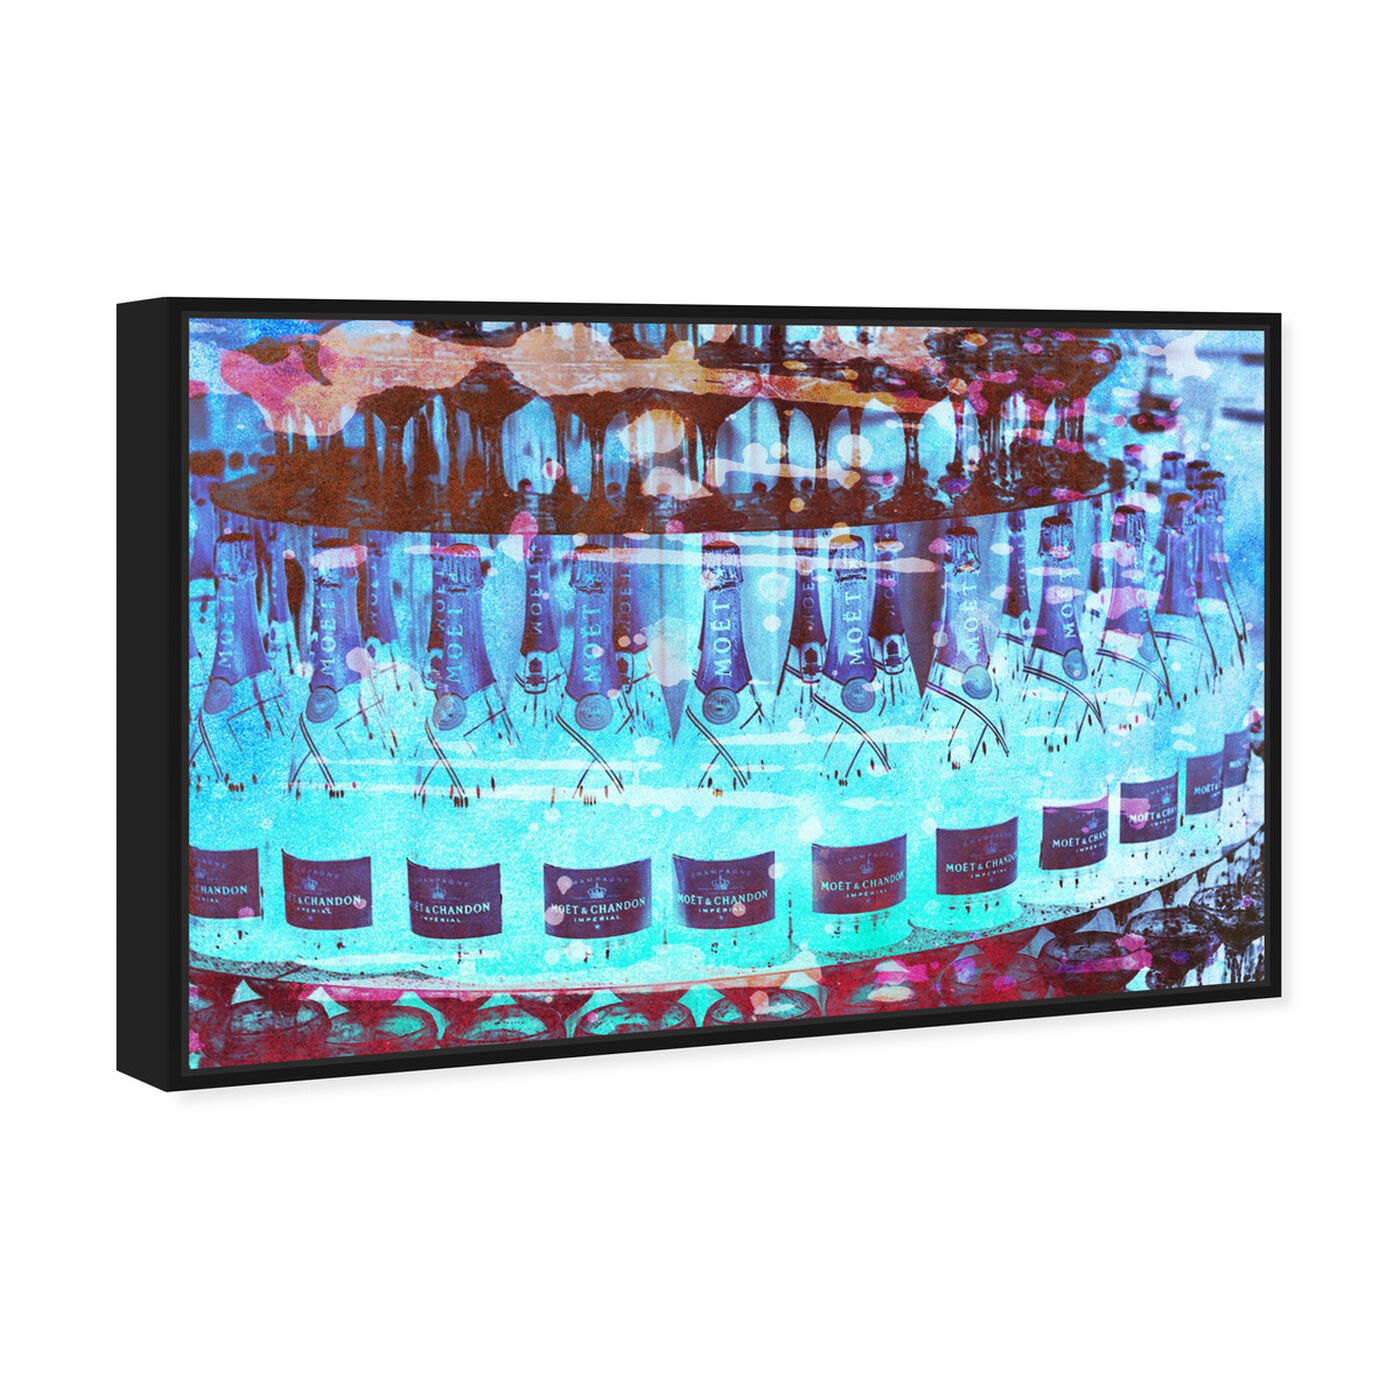 Angled view of Bubbly Cake featuring drinks and spirits and champagne art.